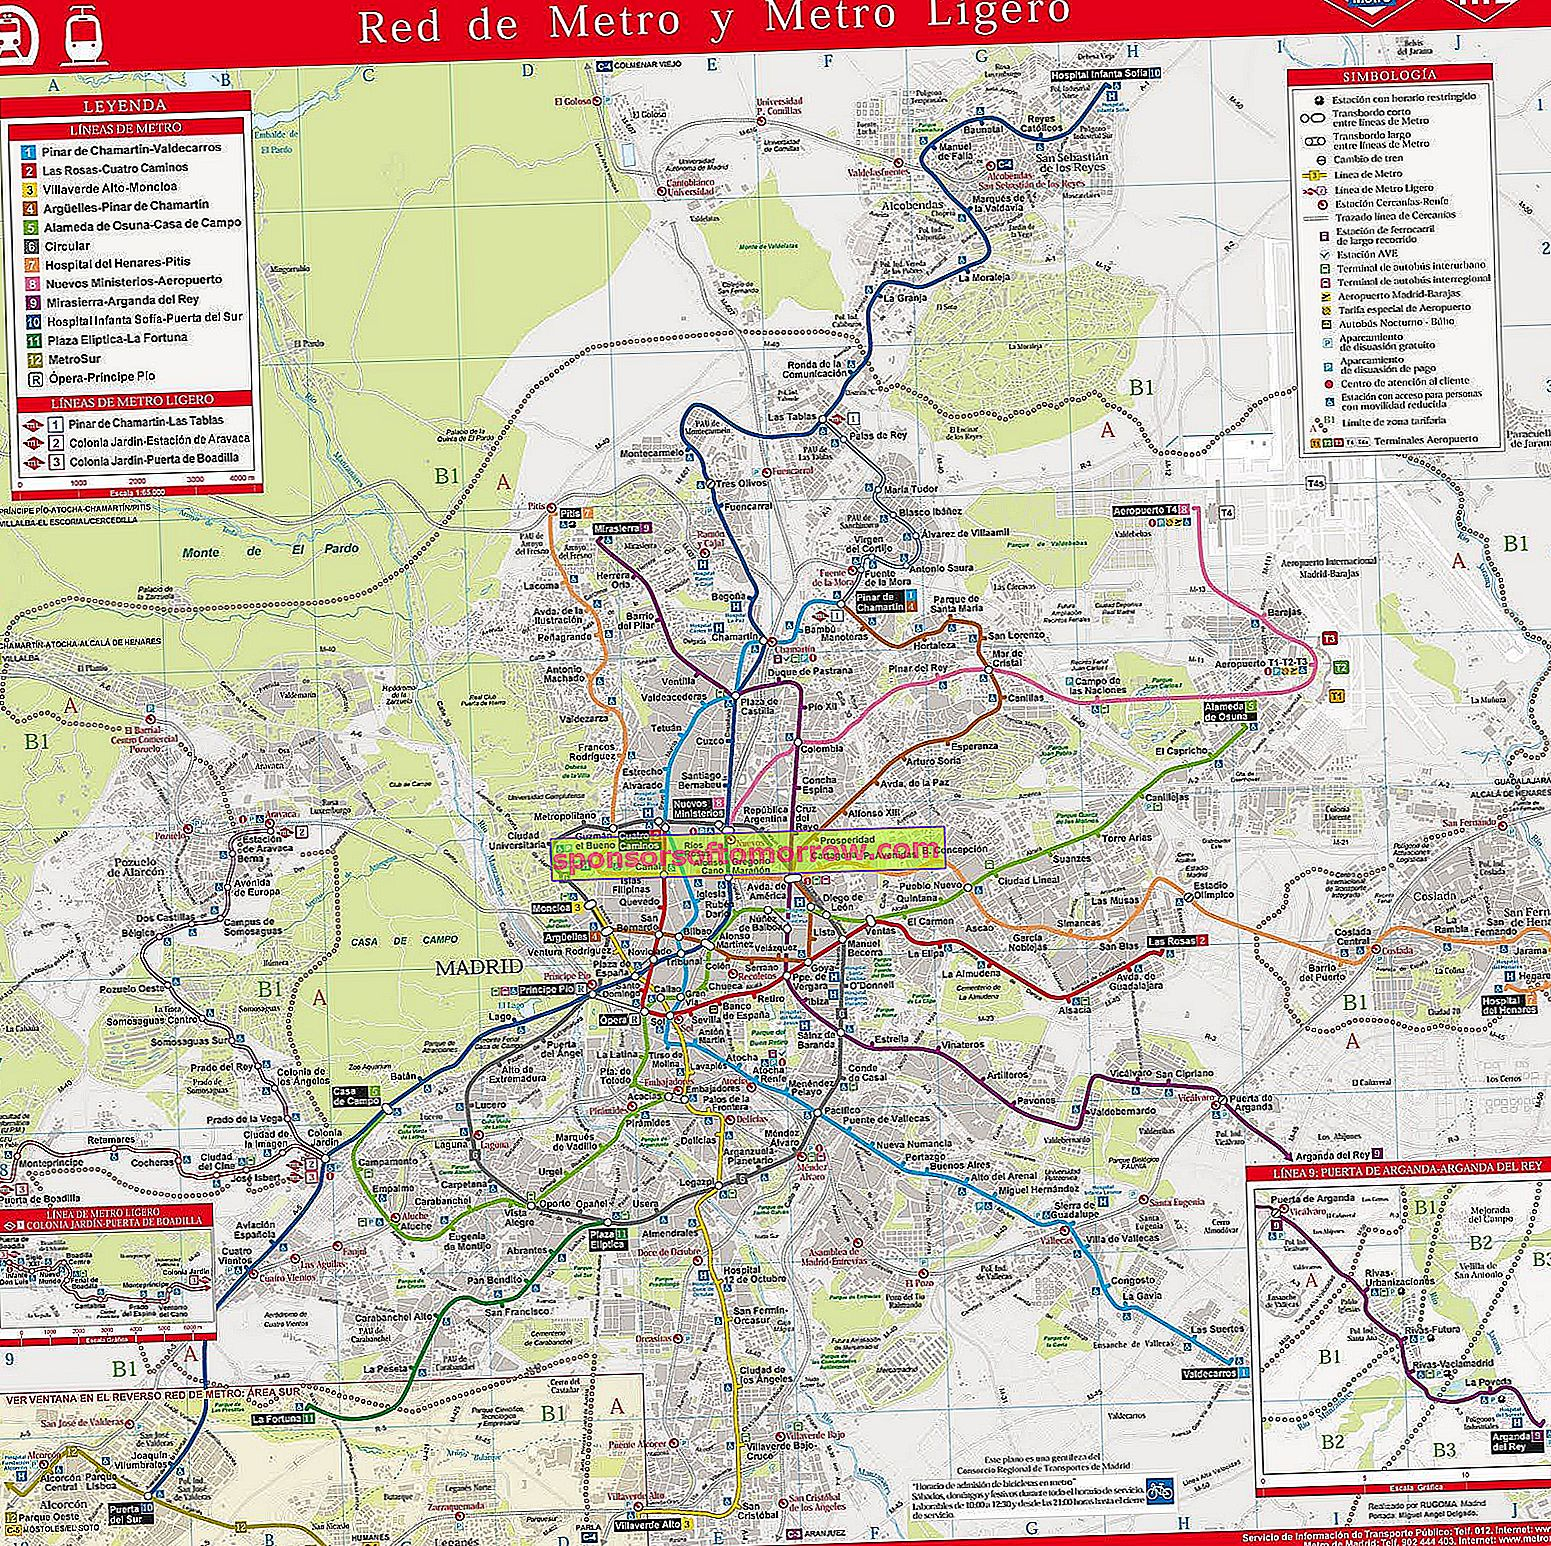 Madrid metro, more than 100 images of the metro, commuter and bus map